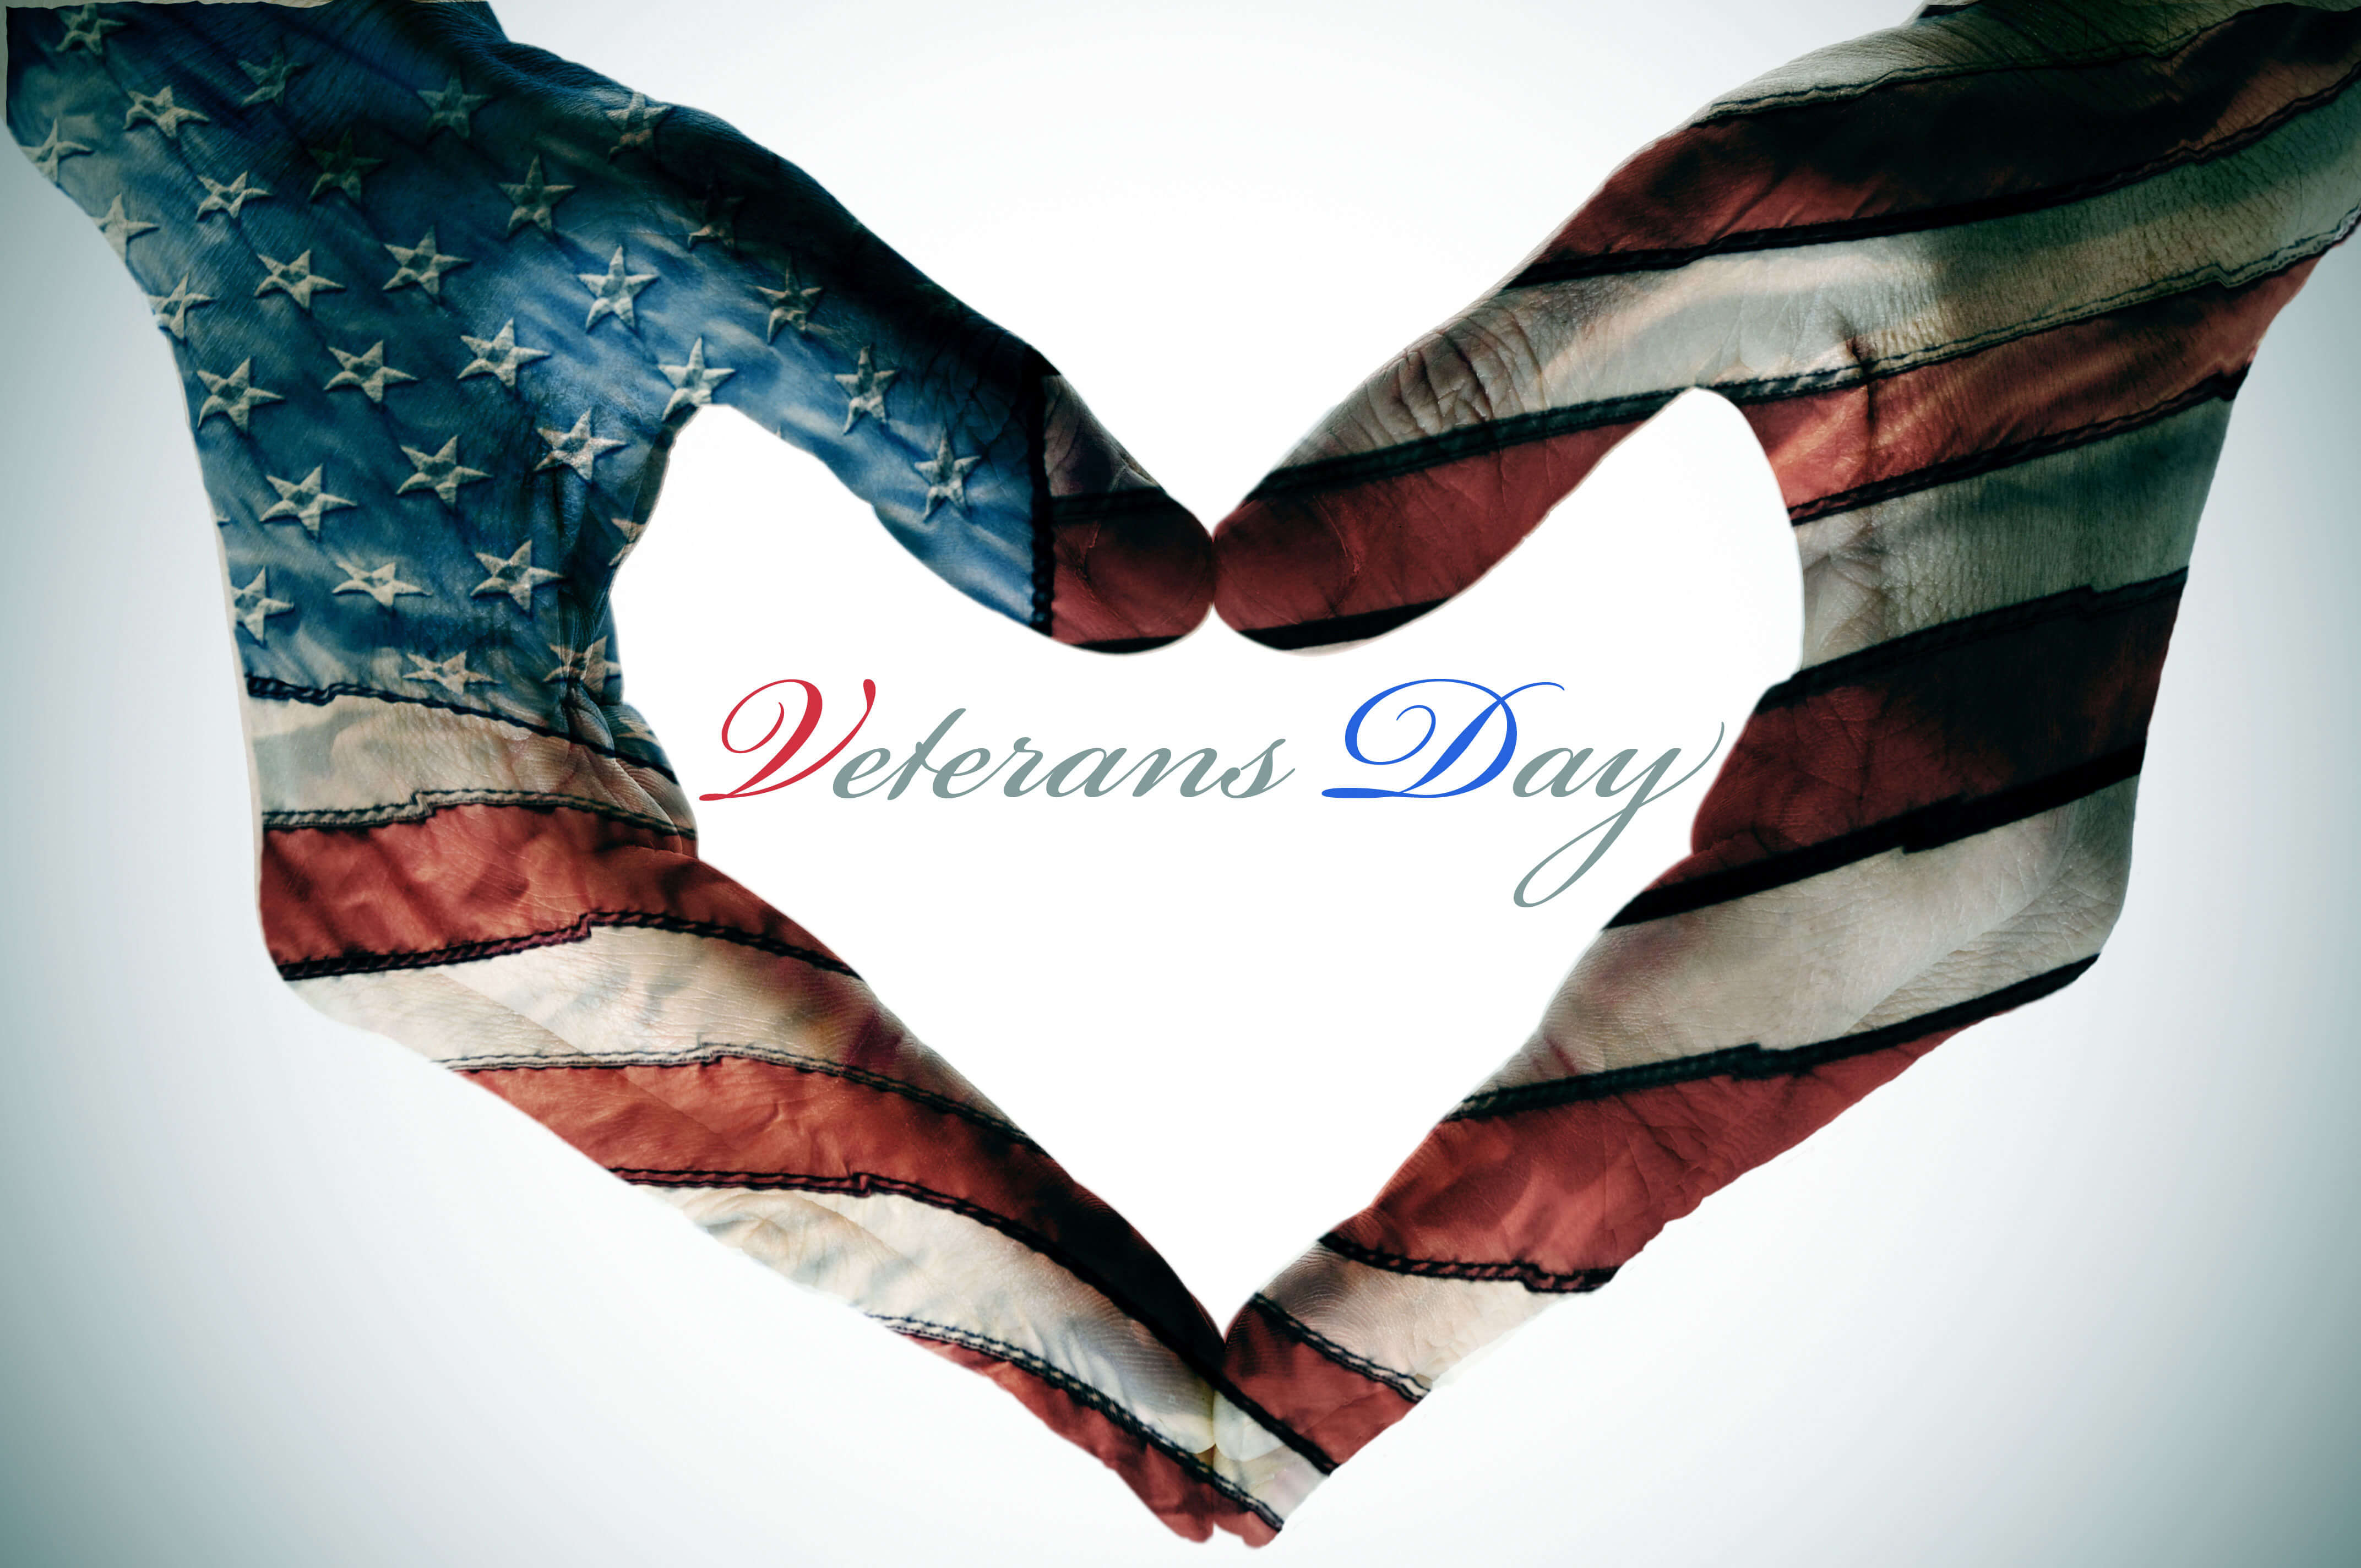 veterans day america flag usa hand art hd wallpaper